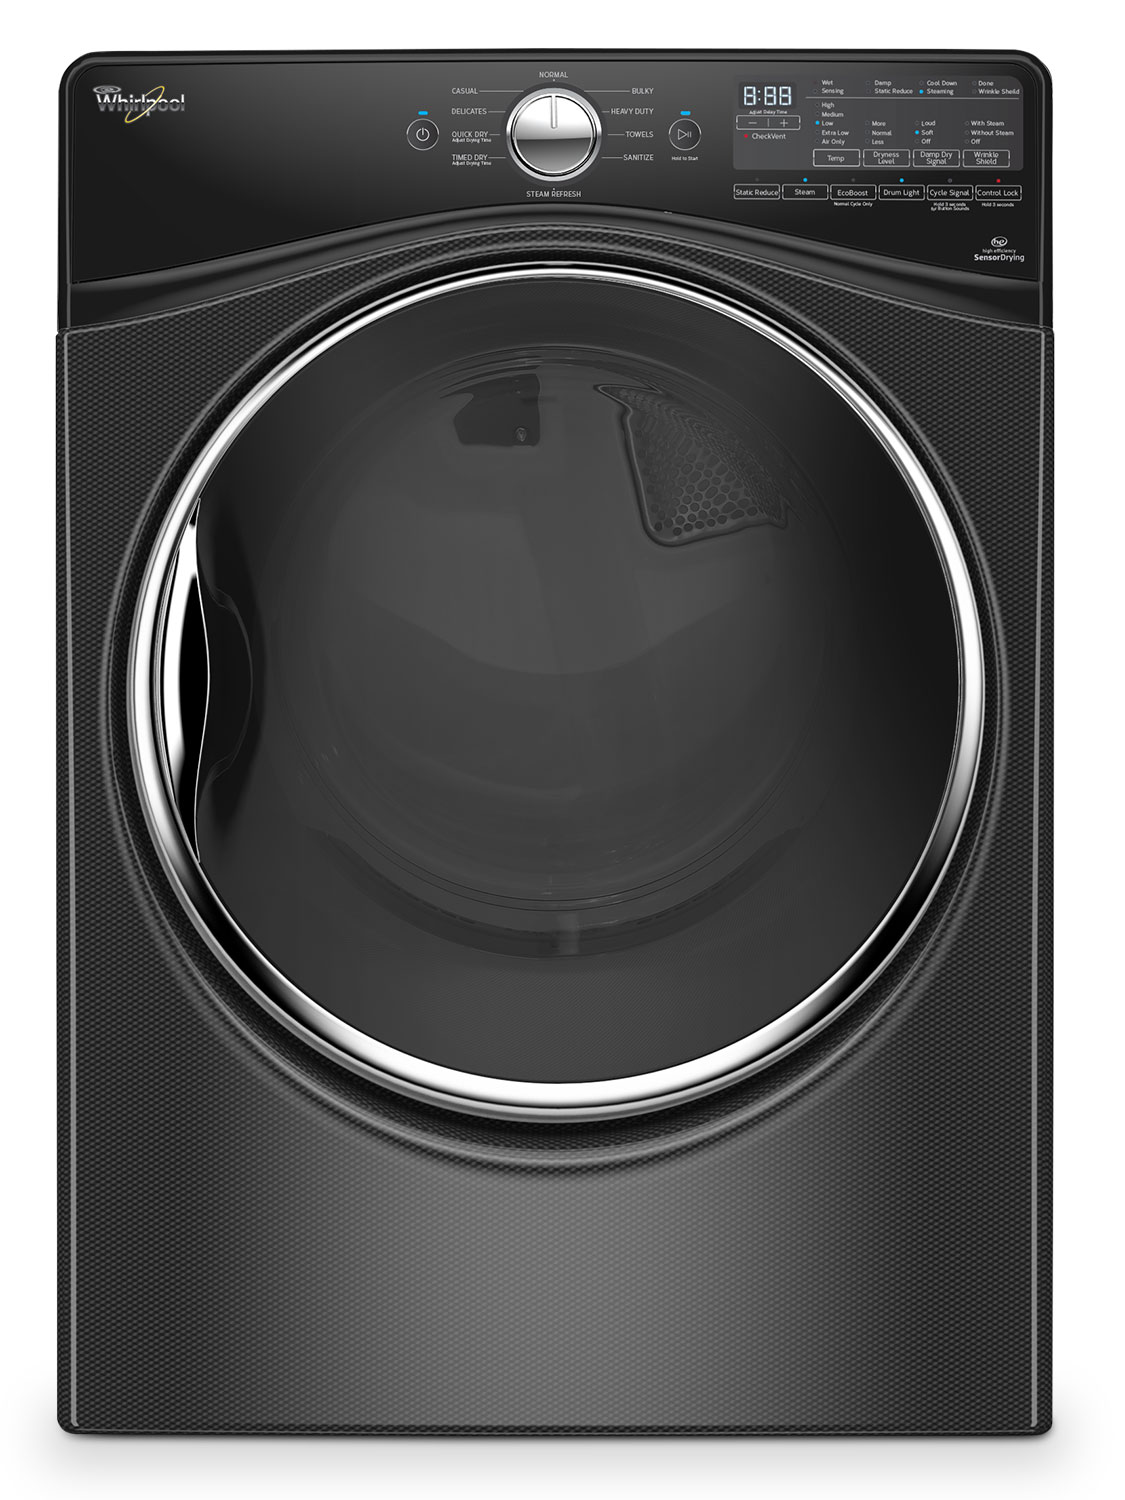 Whirpool Black Diamond Gas Dryer (7.4 Cu. Ft.) - WGD92HEFBD